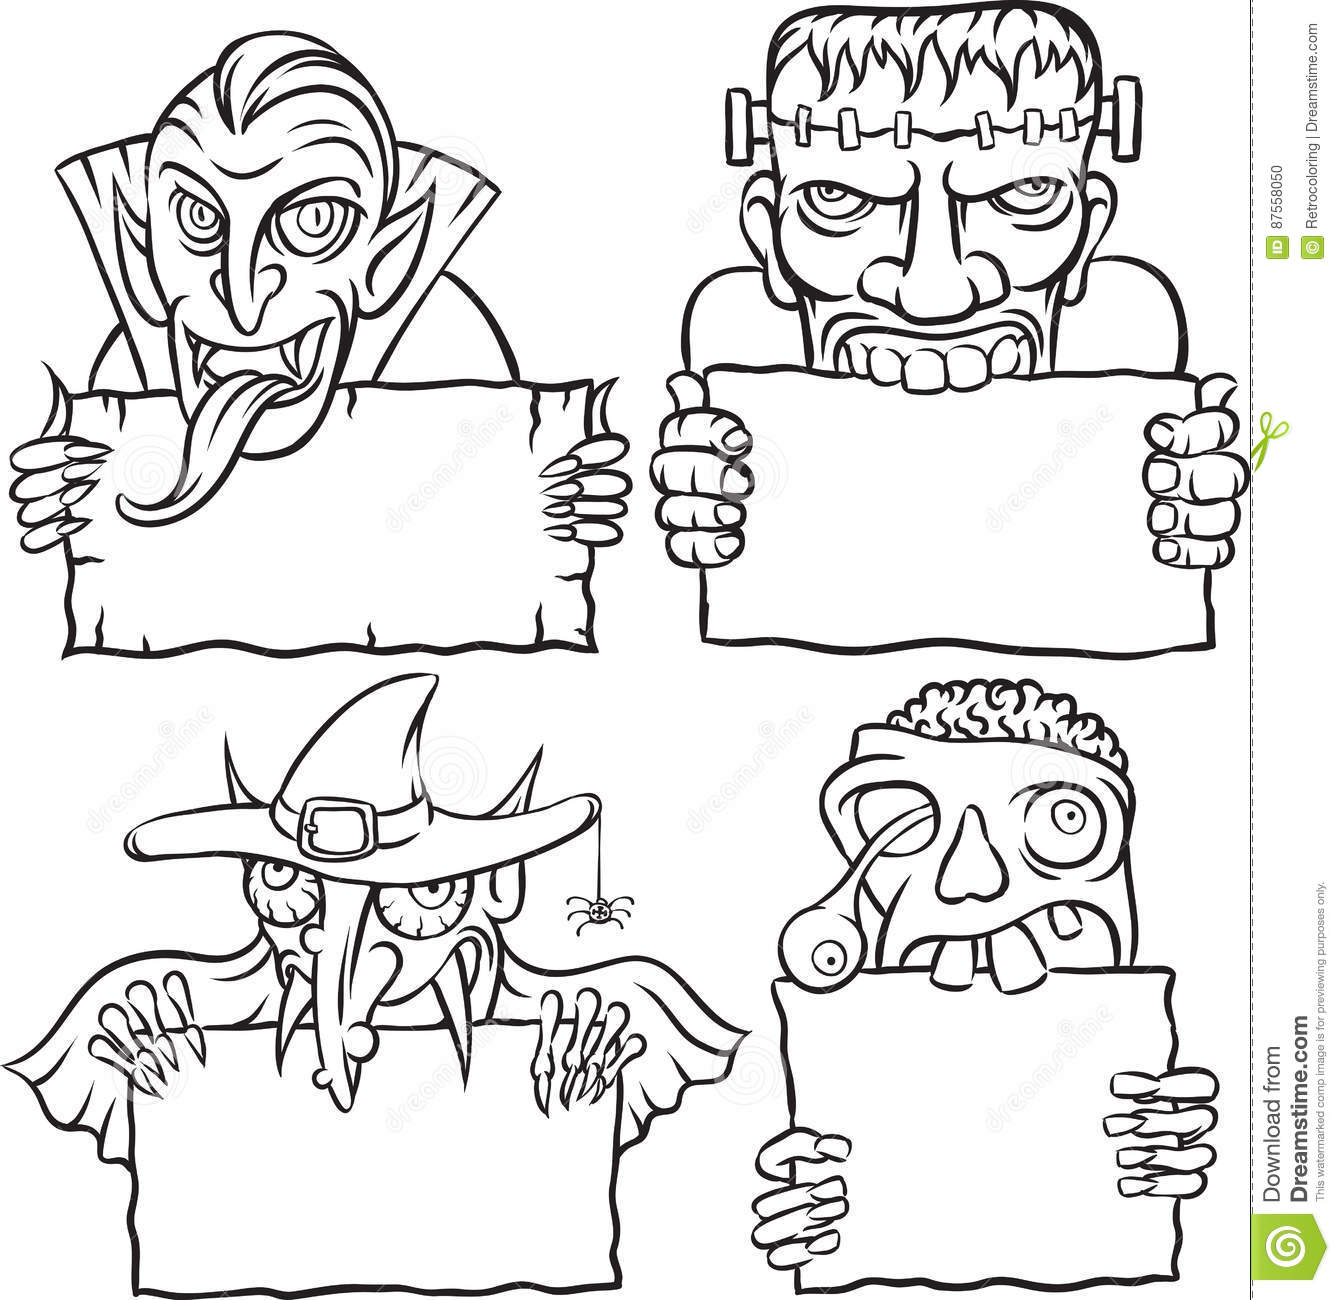 cartoon character halloween coloring pages - photo#35